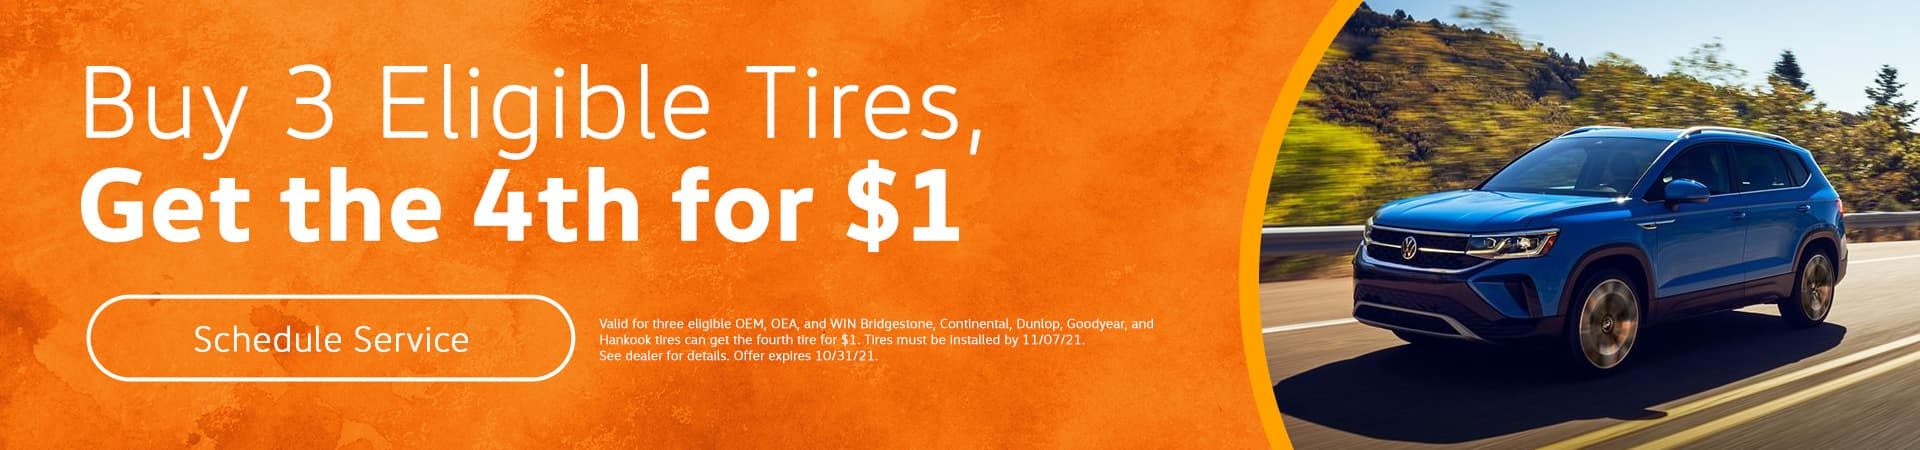 Tire Special in Tampa, FL